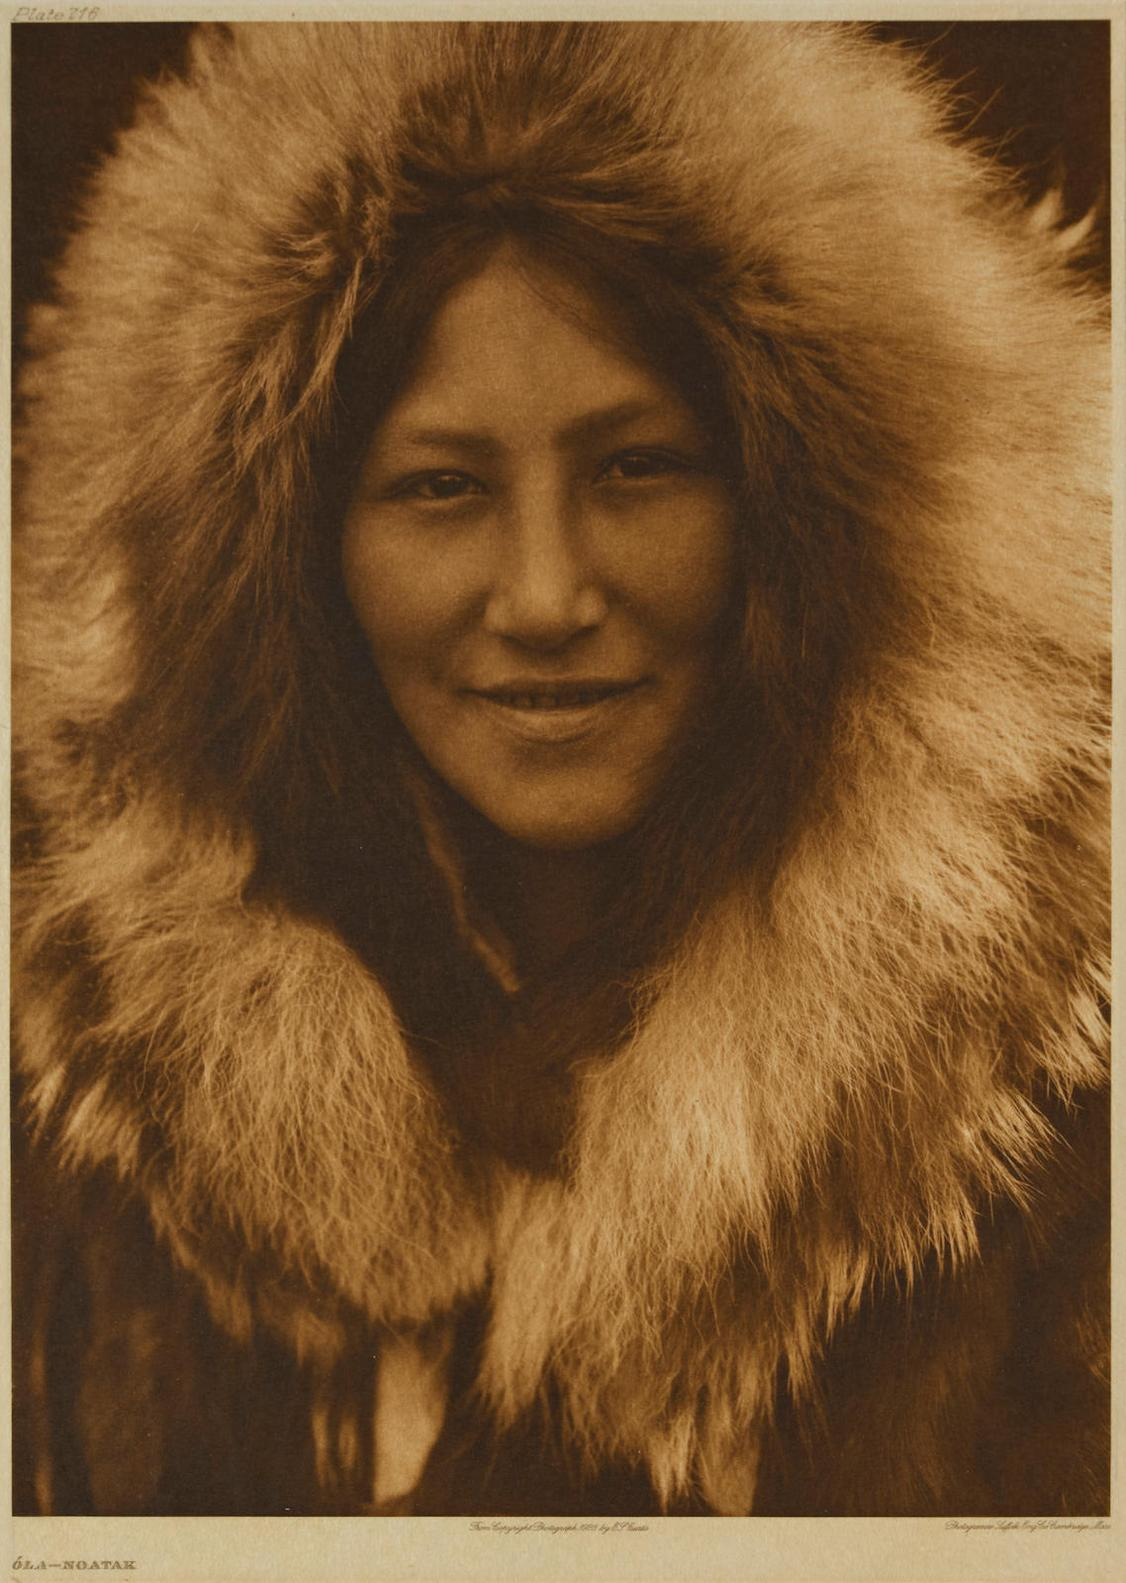 Edward S. Curtis-The North American Indian, Portfolio-1928